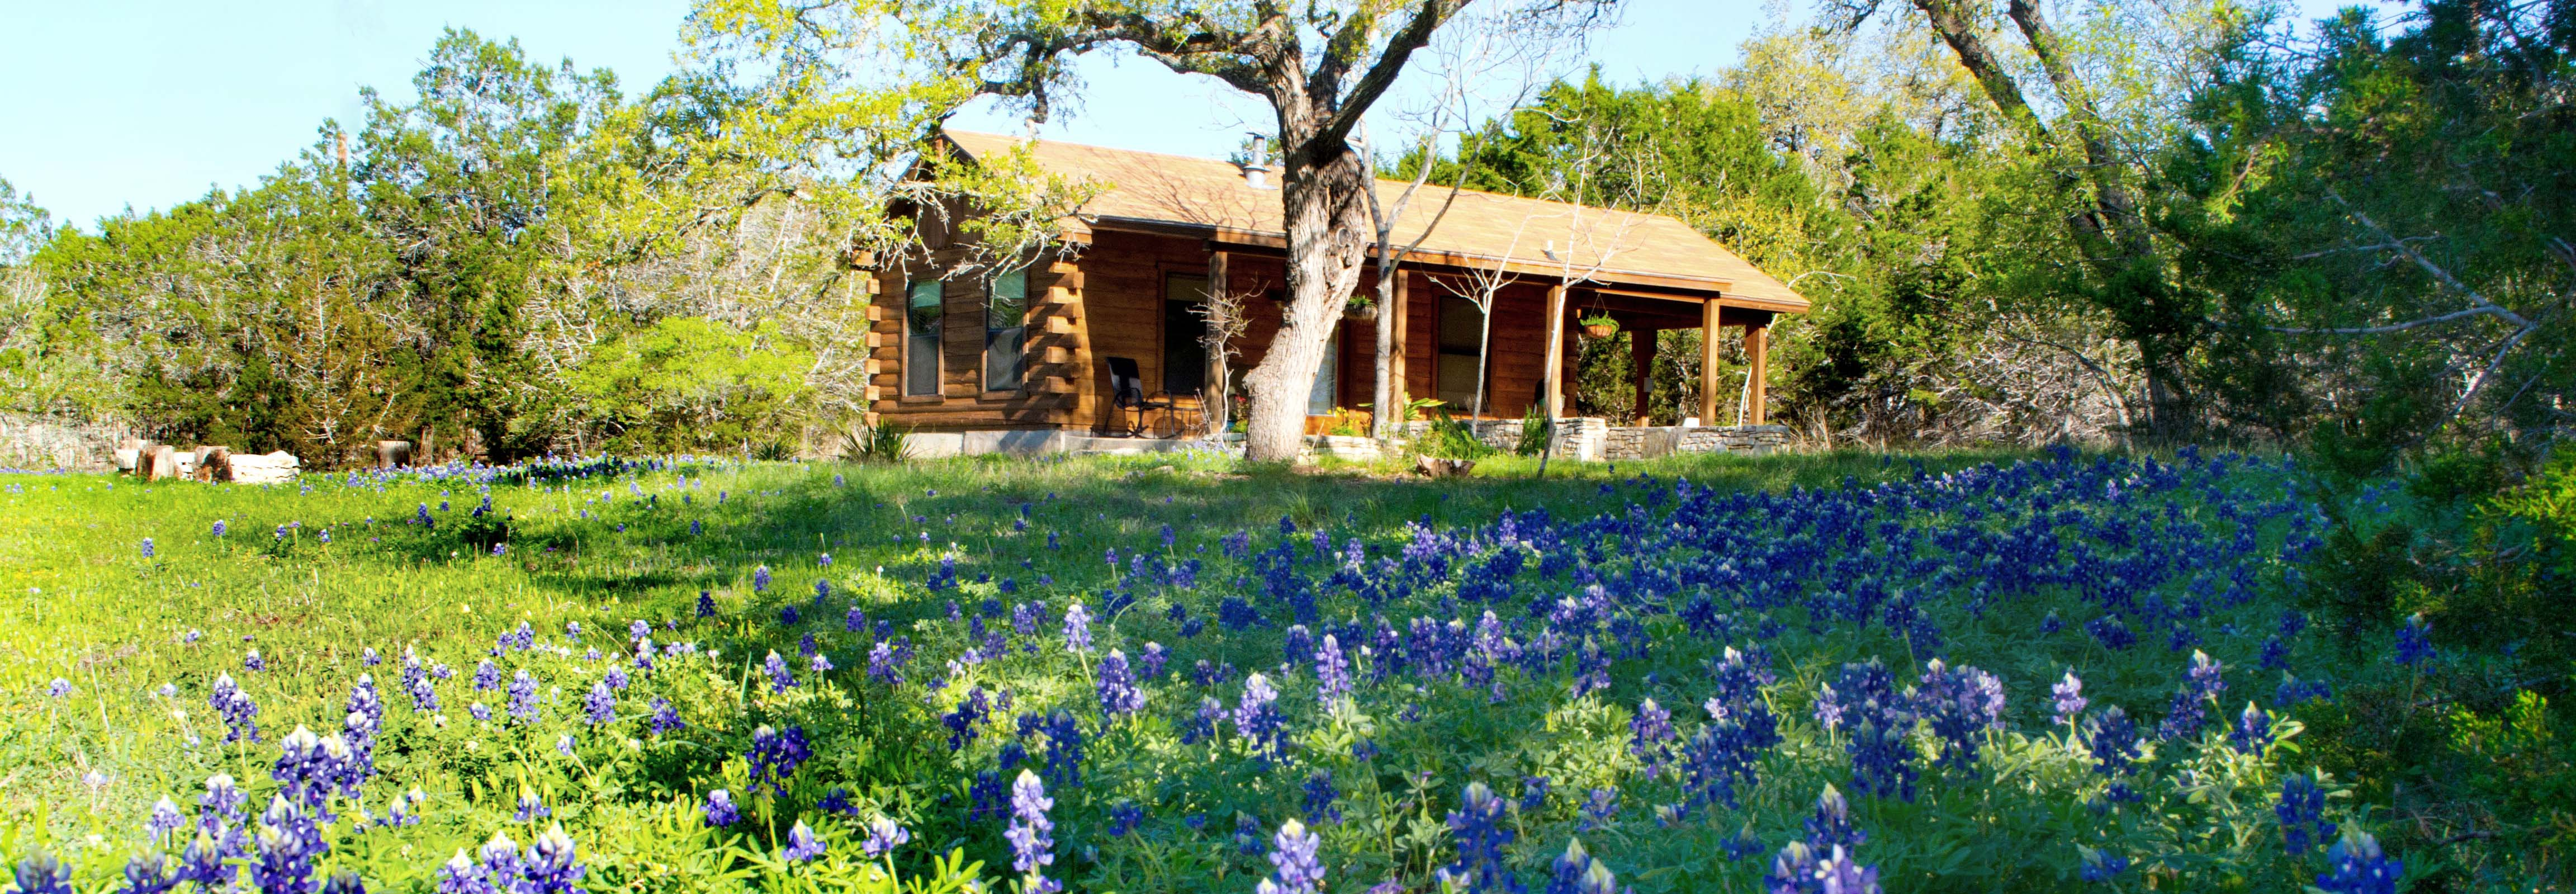 houses wimberley for cabins lodging log texas drobek sale hot country hill tub info